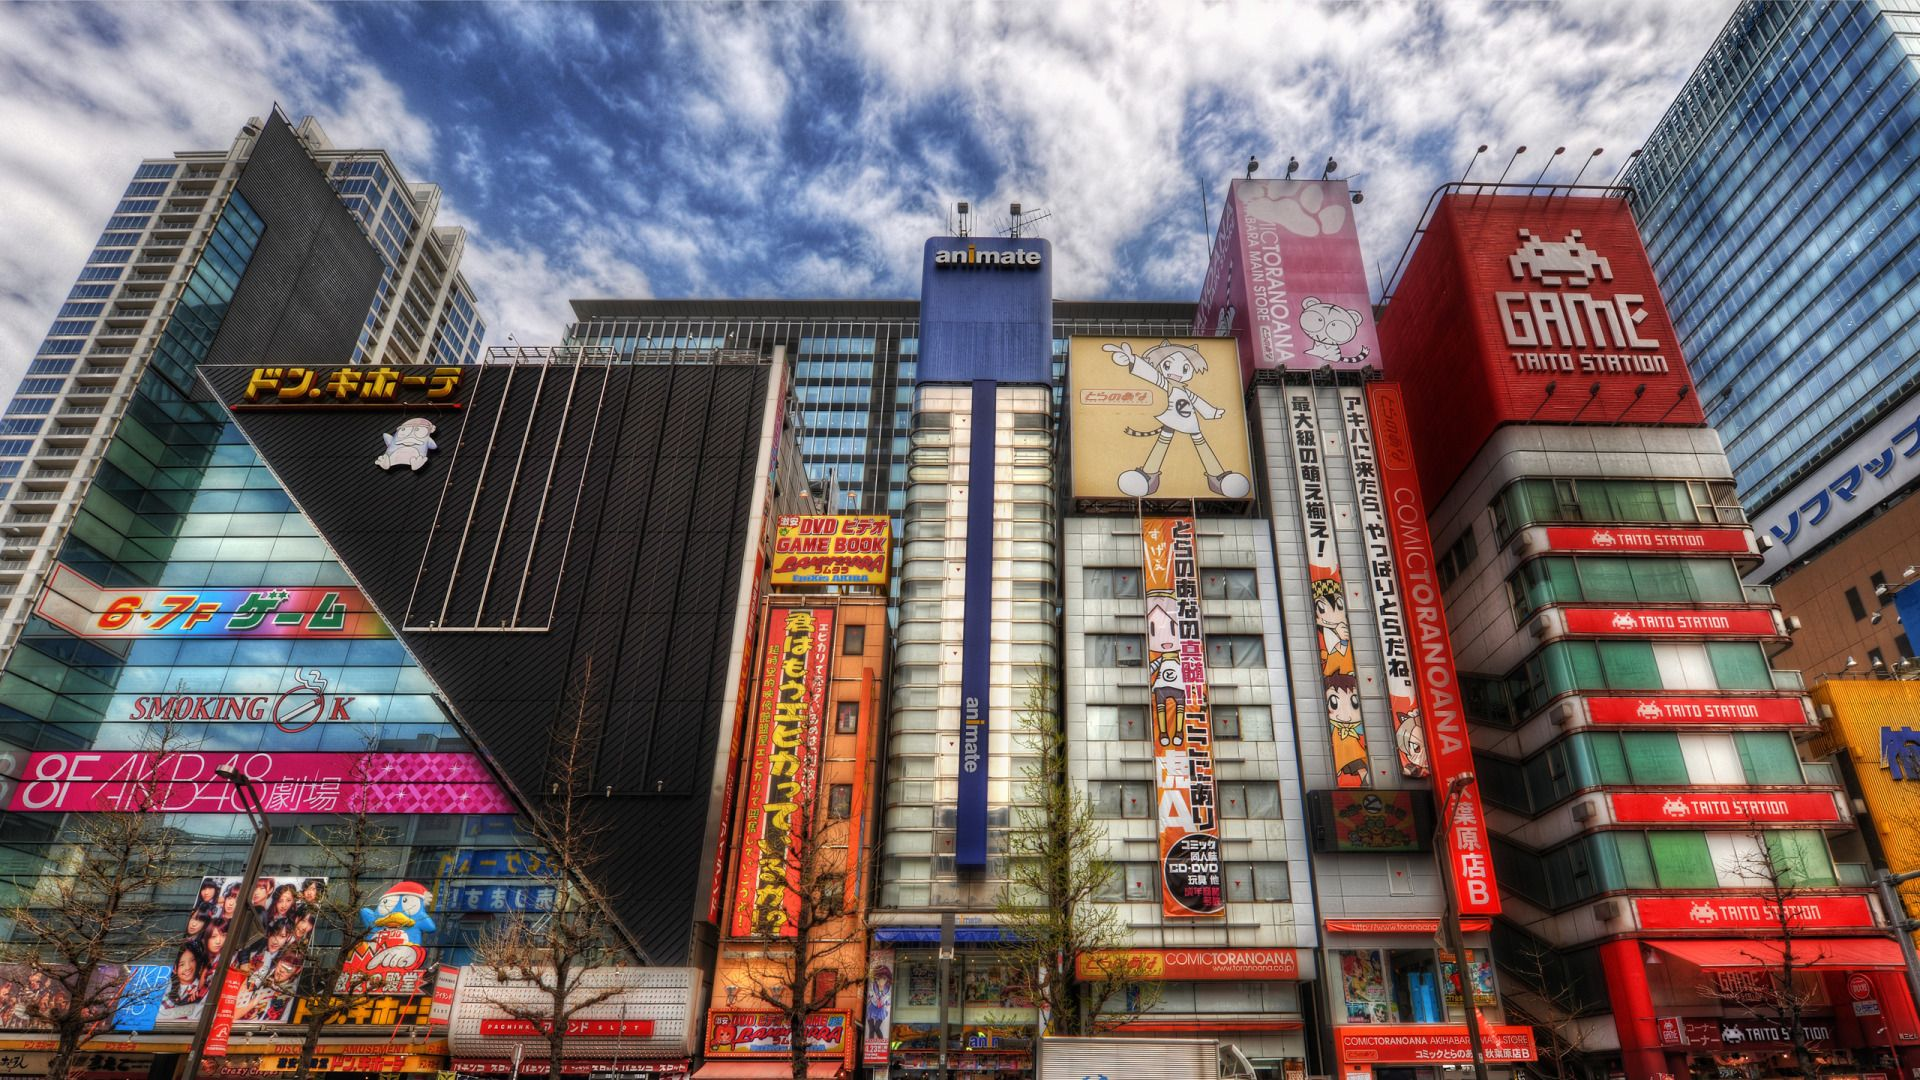 1920x1080 Street Akihabara in Tokyo wallpapers and images - wallpapers ...